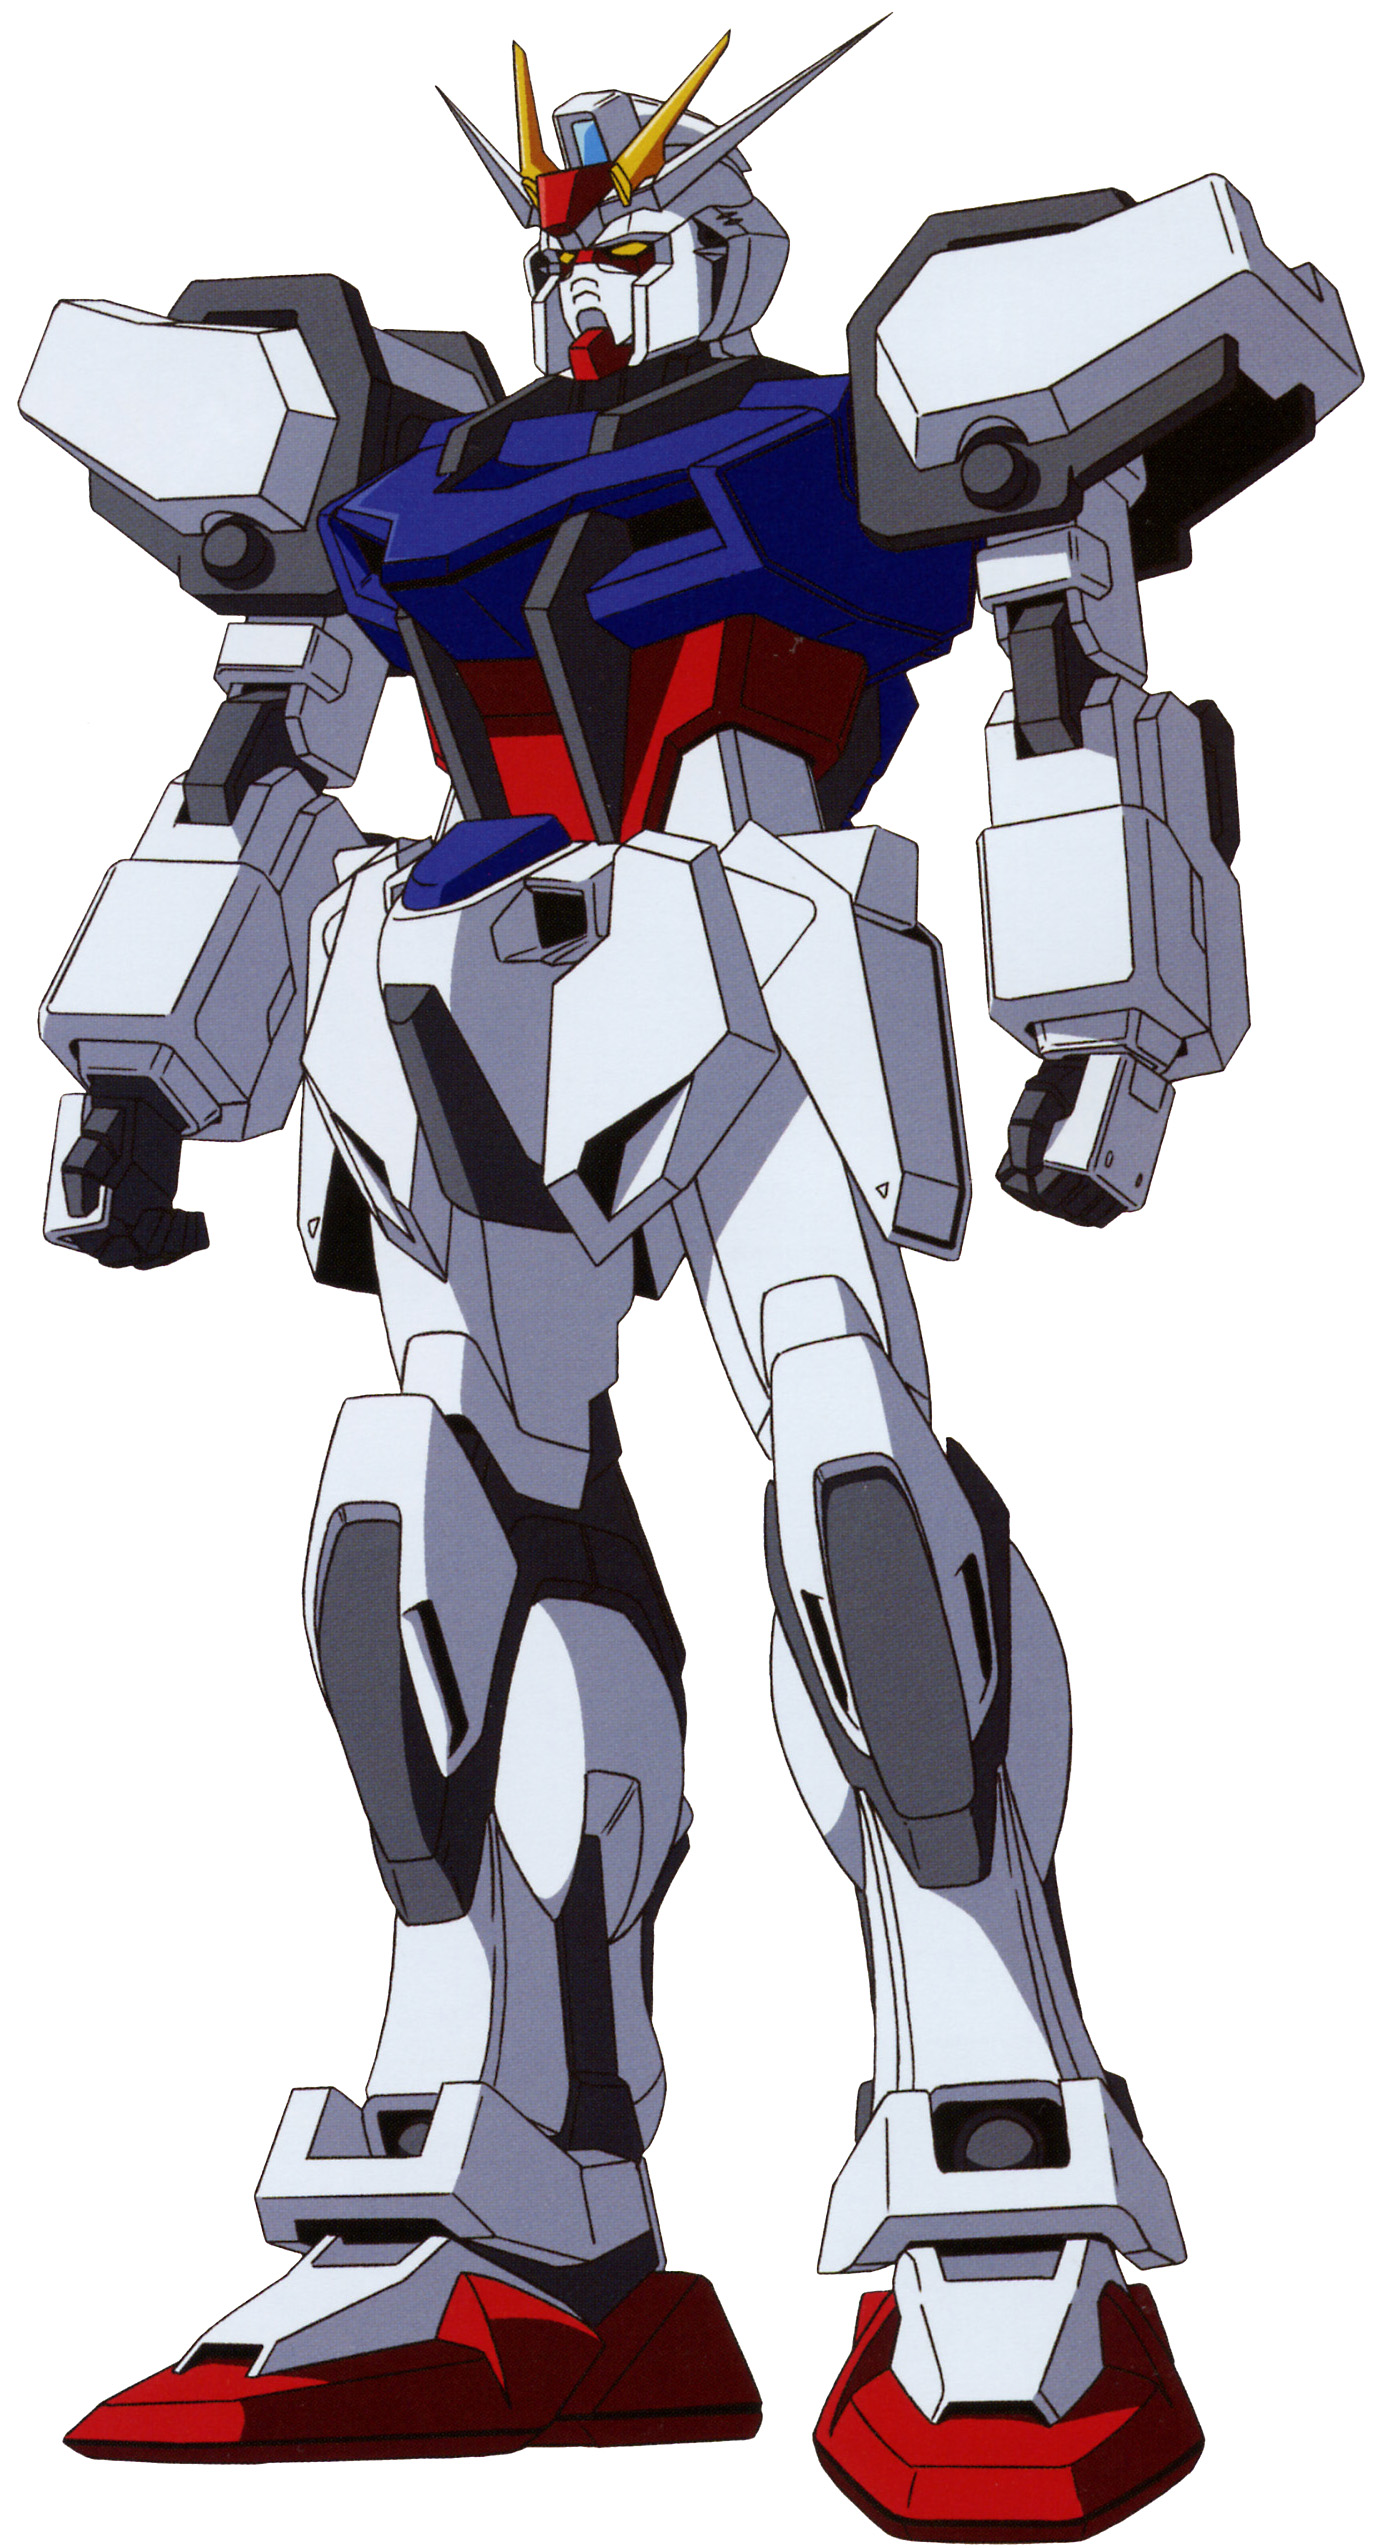 GAT-X105 Strike Gundam From the First season of Gundam SEED